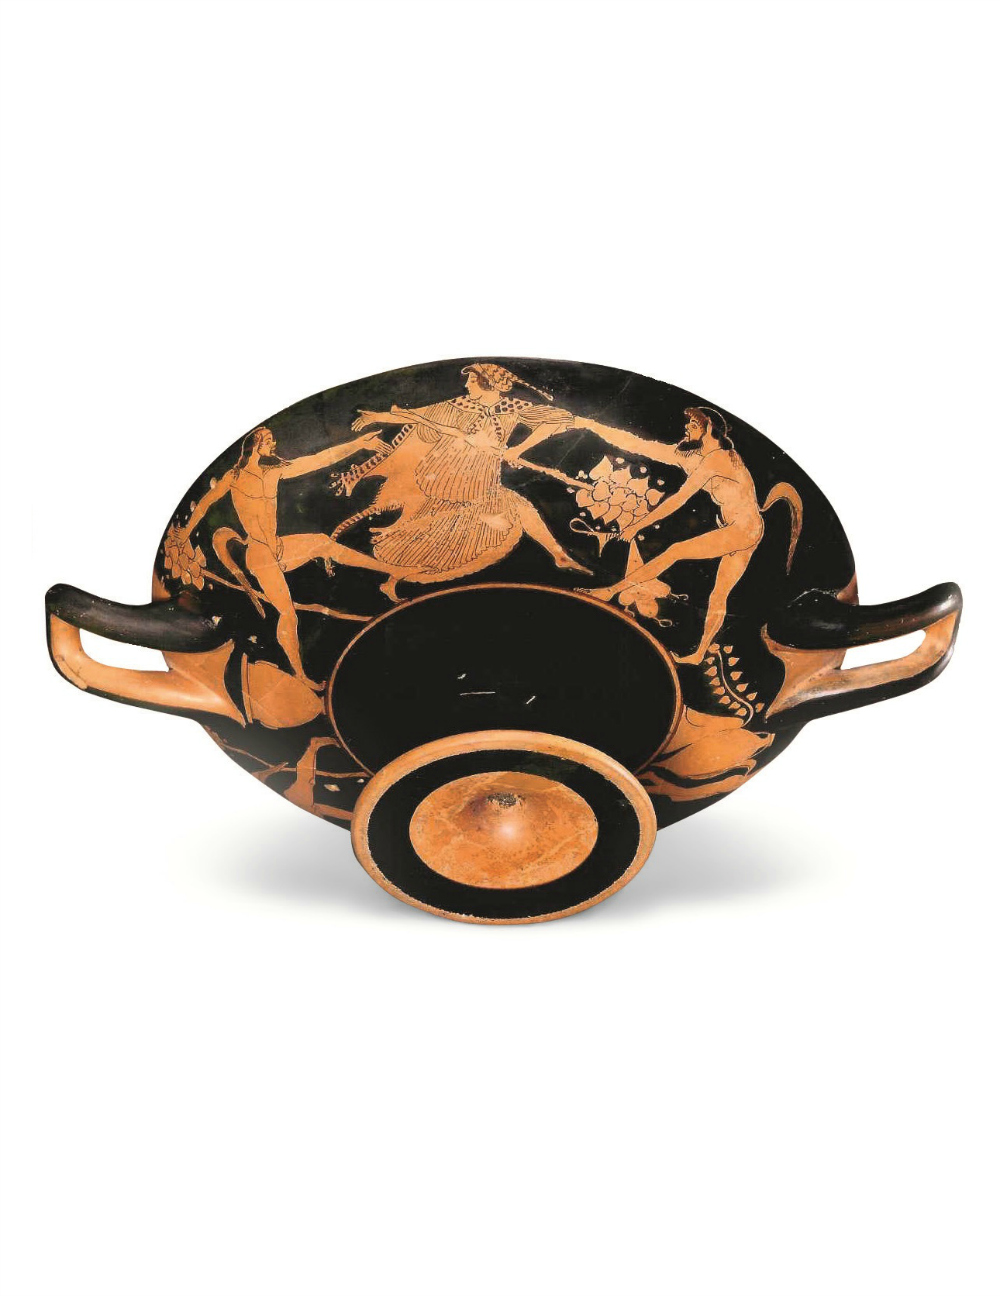 An Attic Red-Figure Kylix with Dionysos and Satyrs